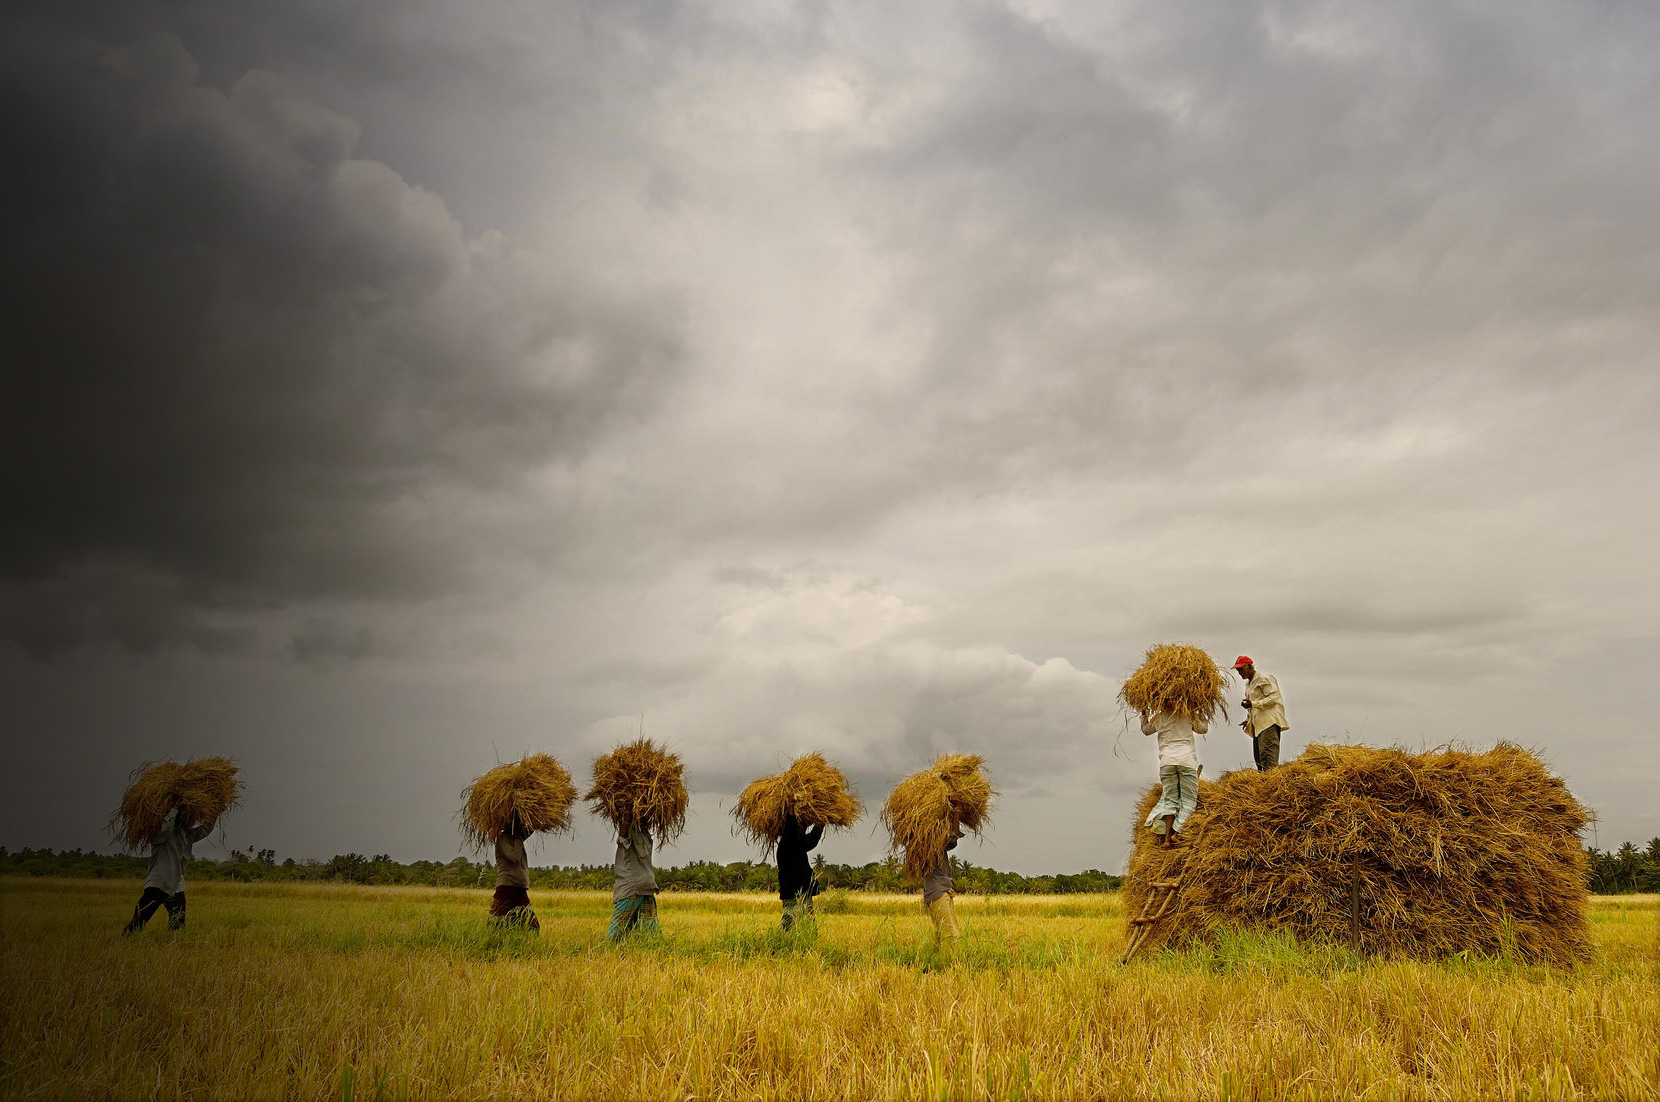 A group of men carry wheat in a field